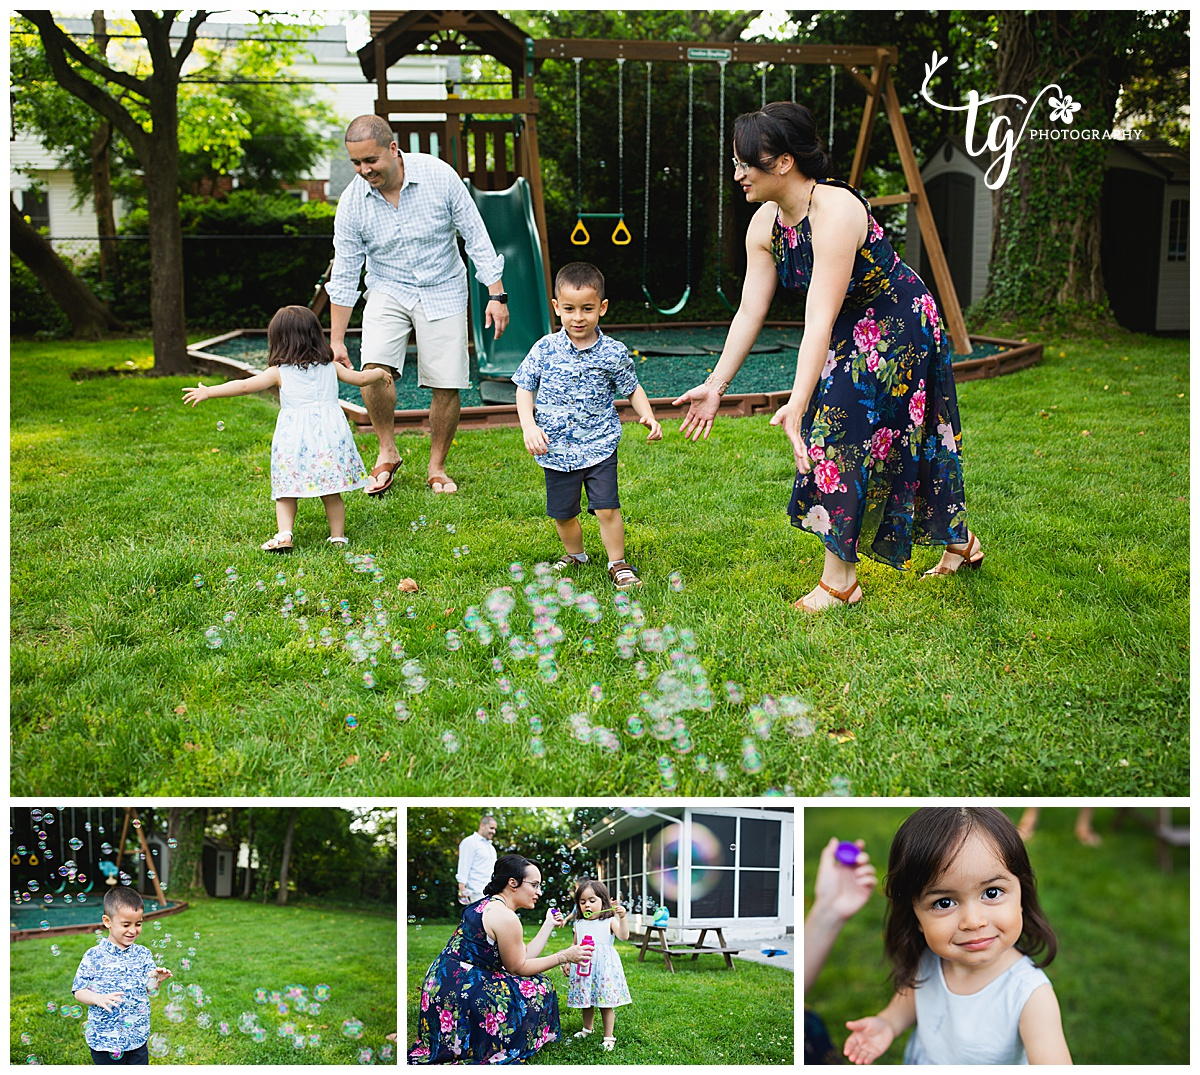 family playing with bubbles in the yard in front of swing set with toddlers